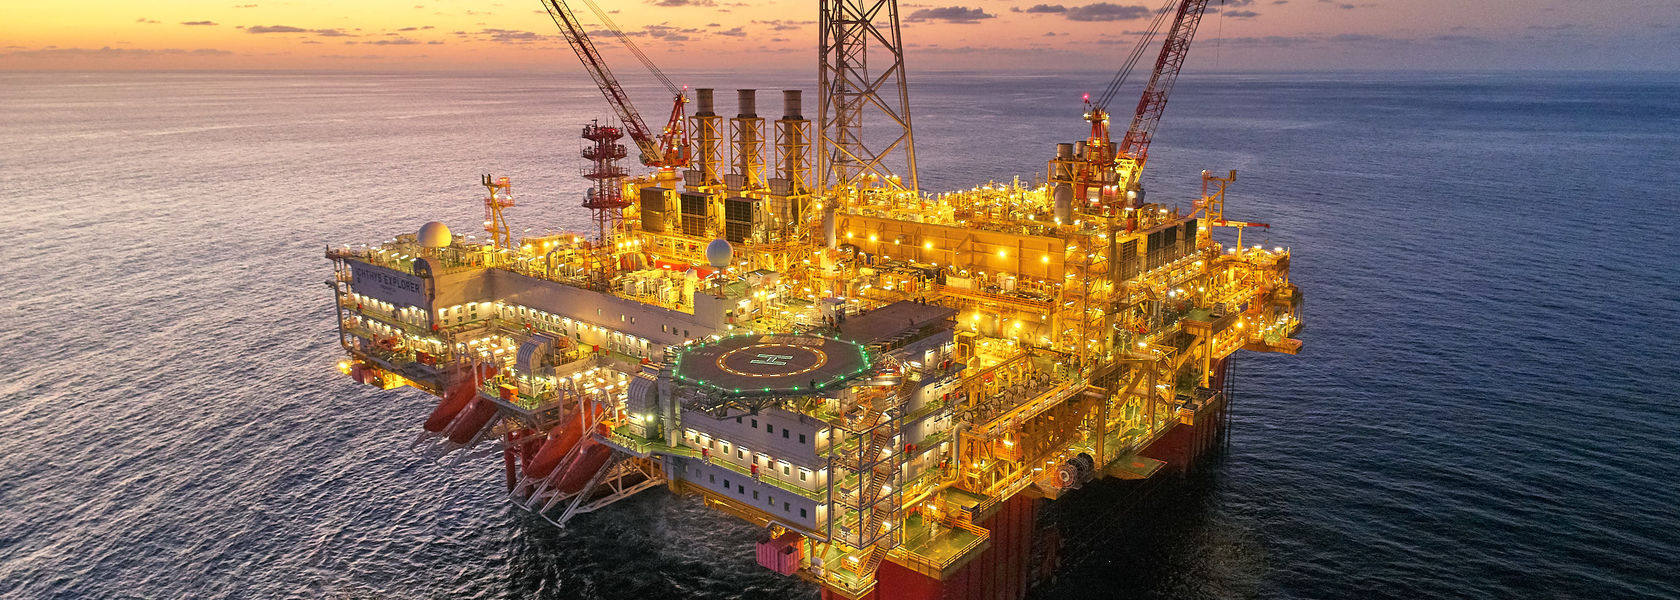 Inpex's Ichthys LNG project wins top engineering award